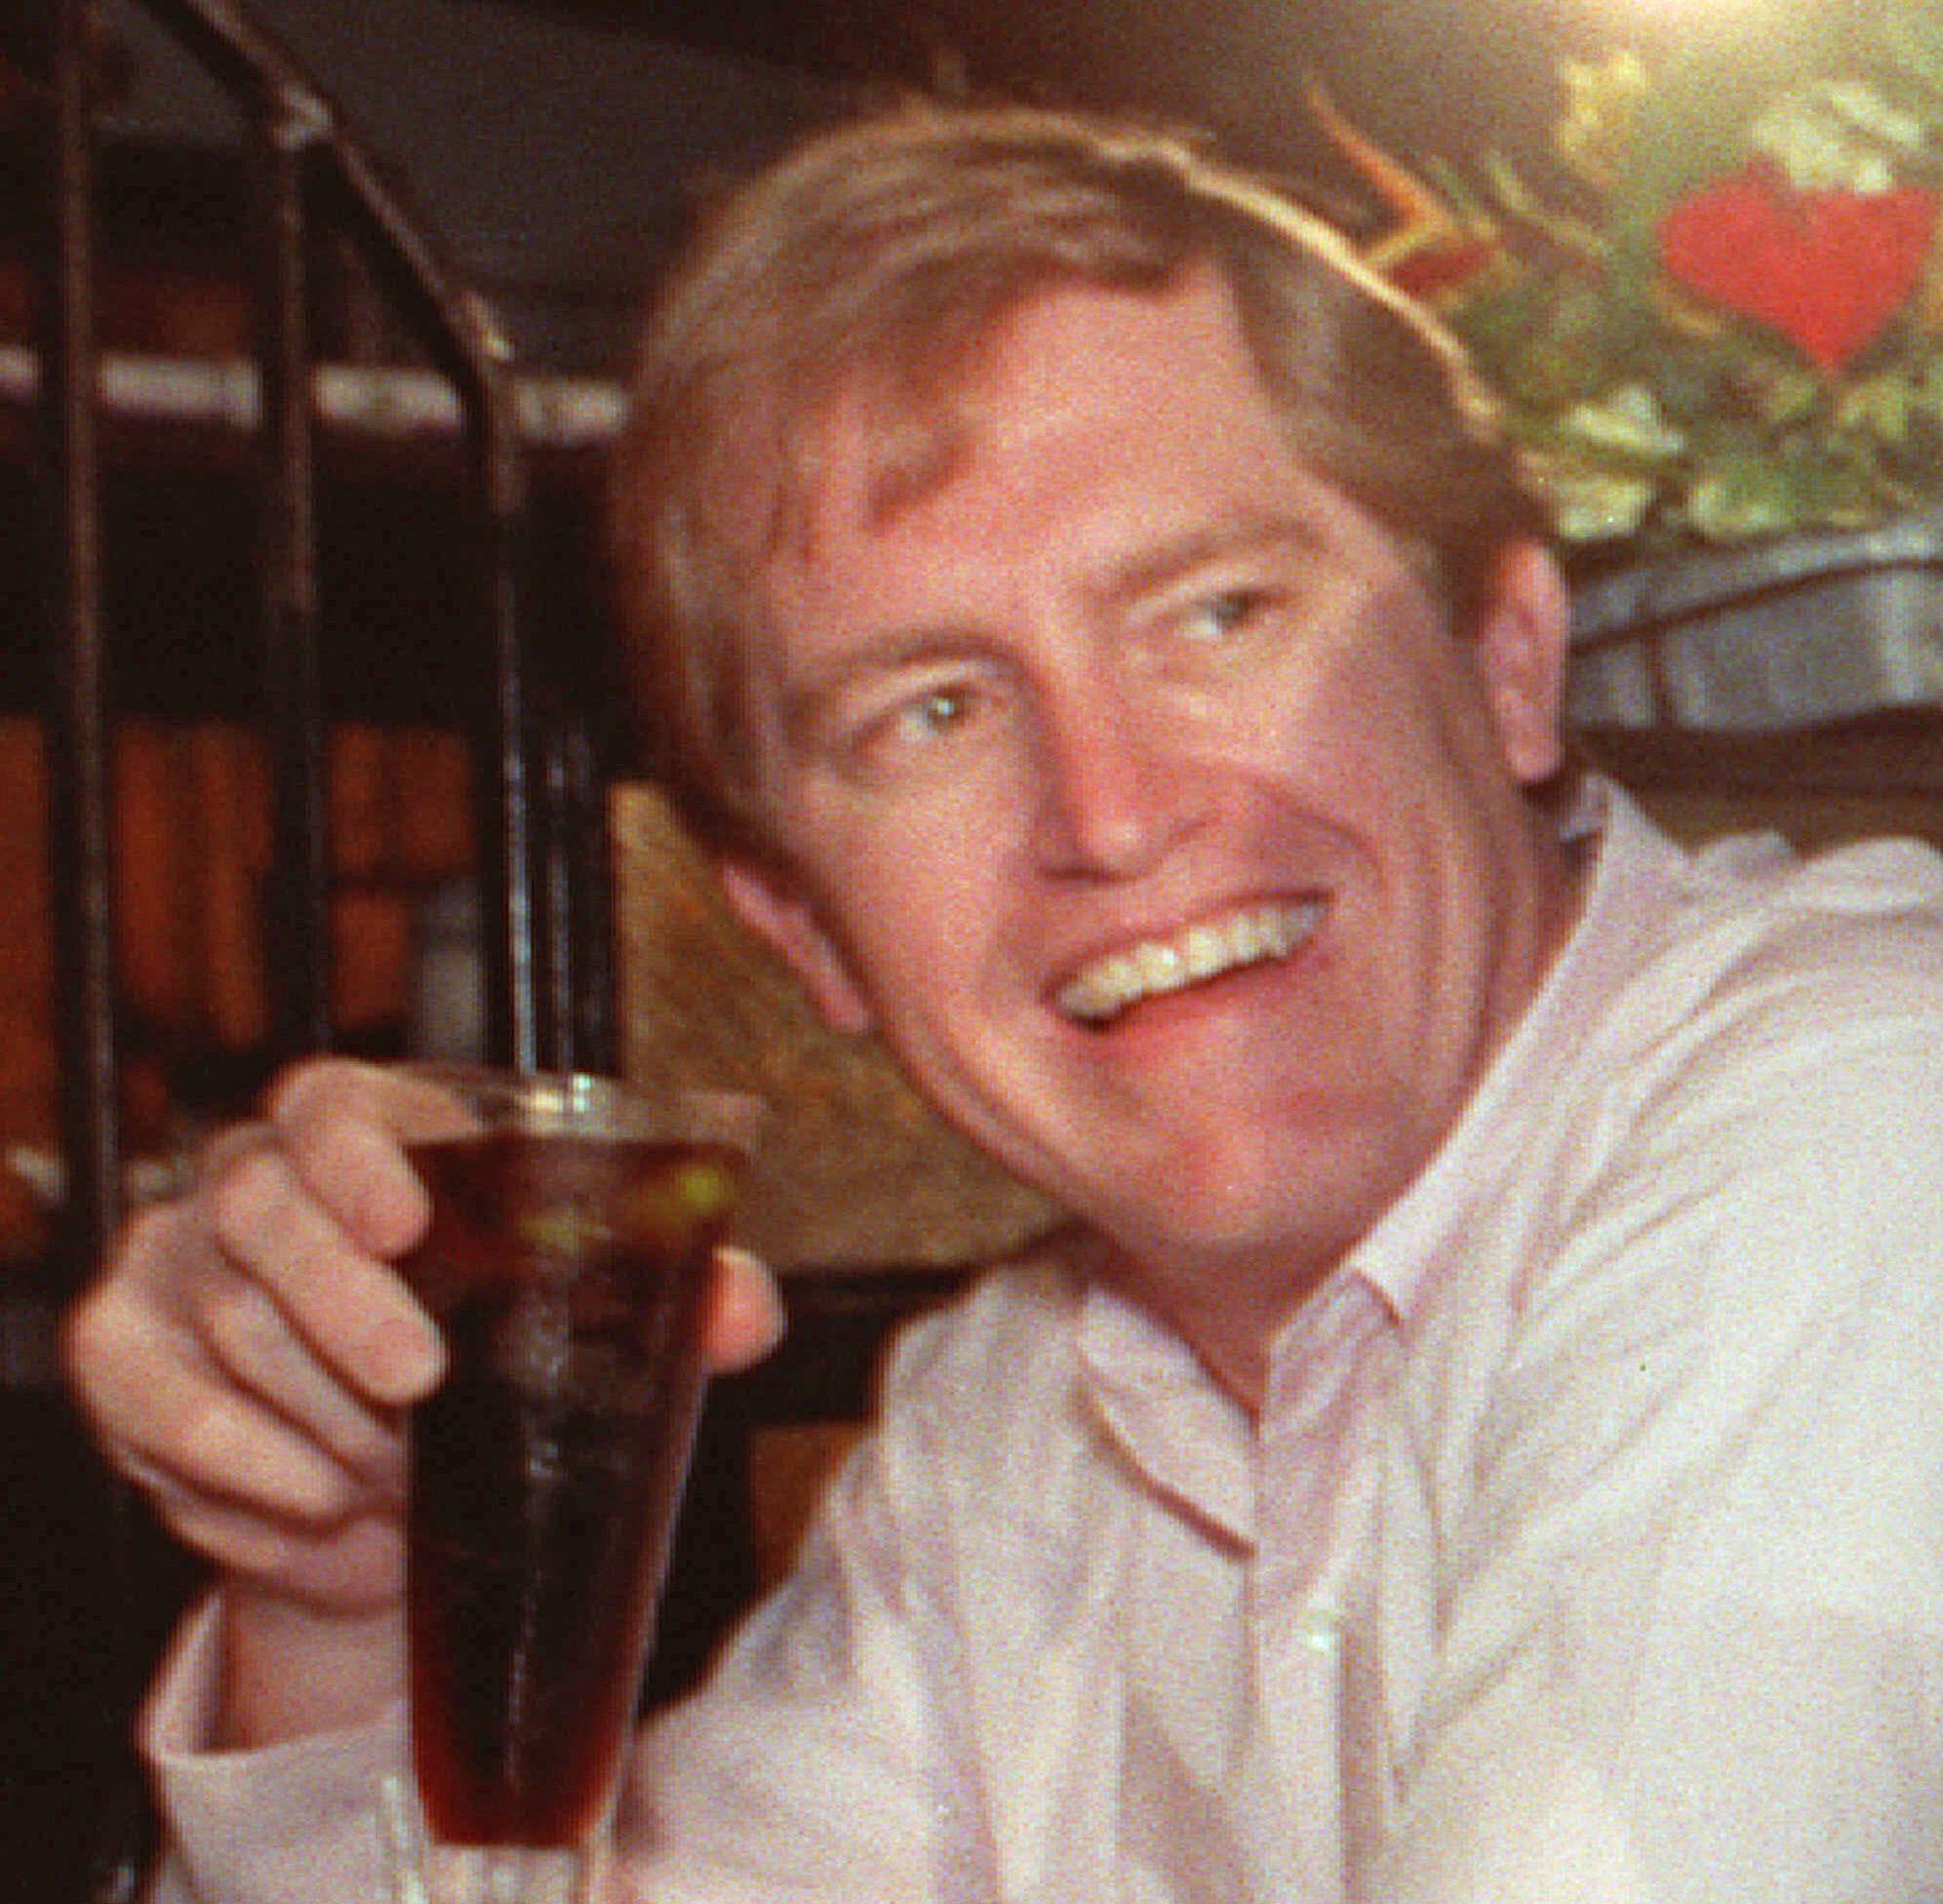 Sports agent Robert Fraley at a Miami restaurant on this April 23, 1990. Farley was killed Oct. 25, 1999 when the lear jet he was aboard with Payne Stewart and three other people crashed in South Dakota.